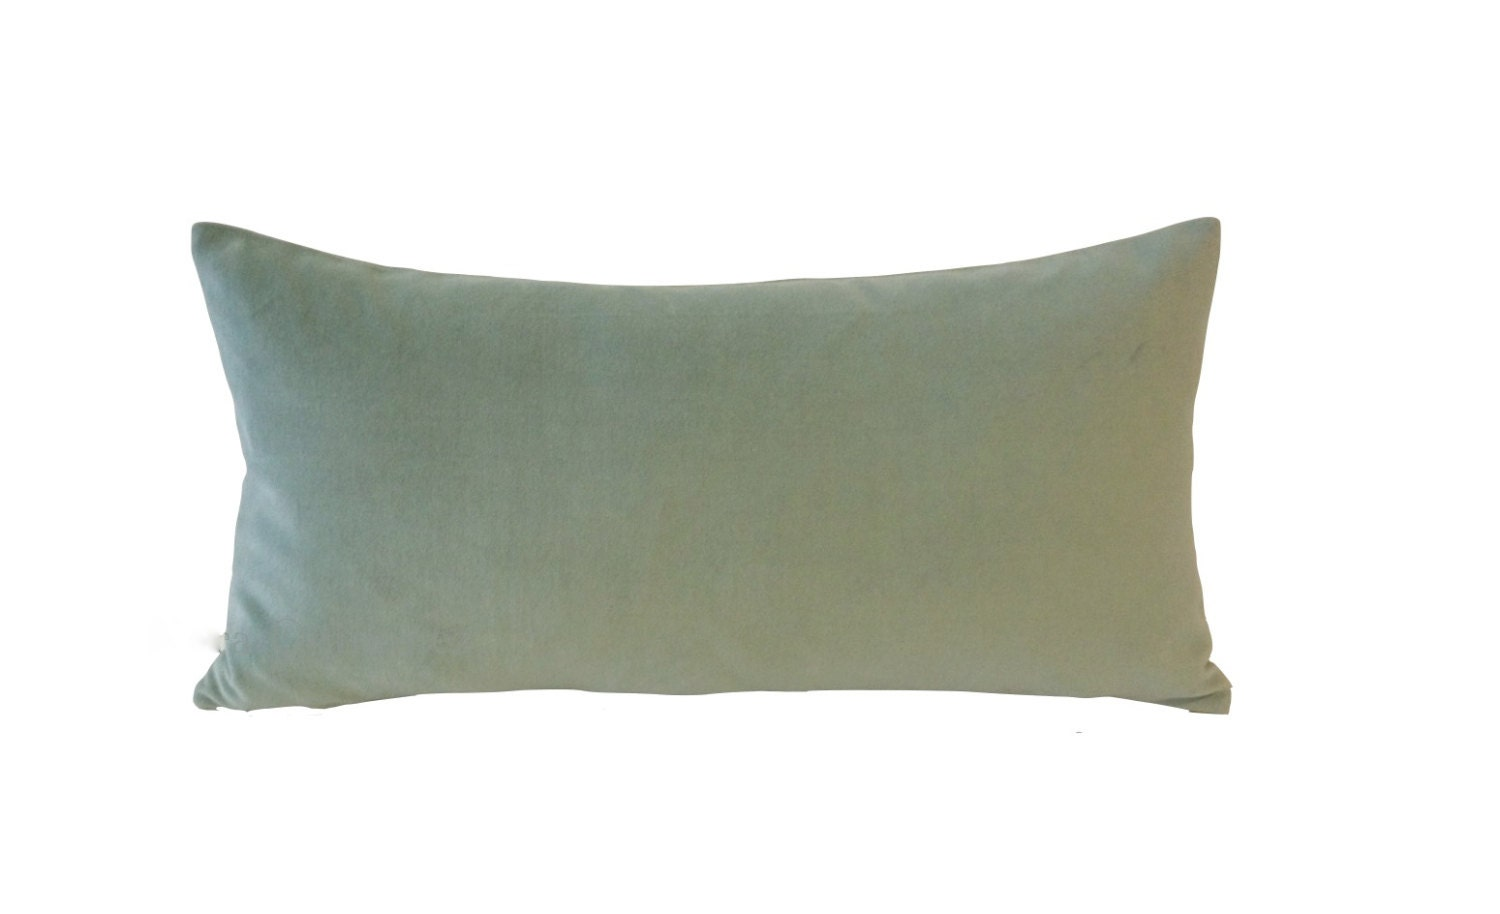 Seafoam Green Decorative Bolster Pillow Cover 10x20 TO 12x24